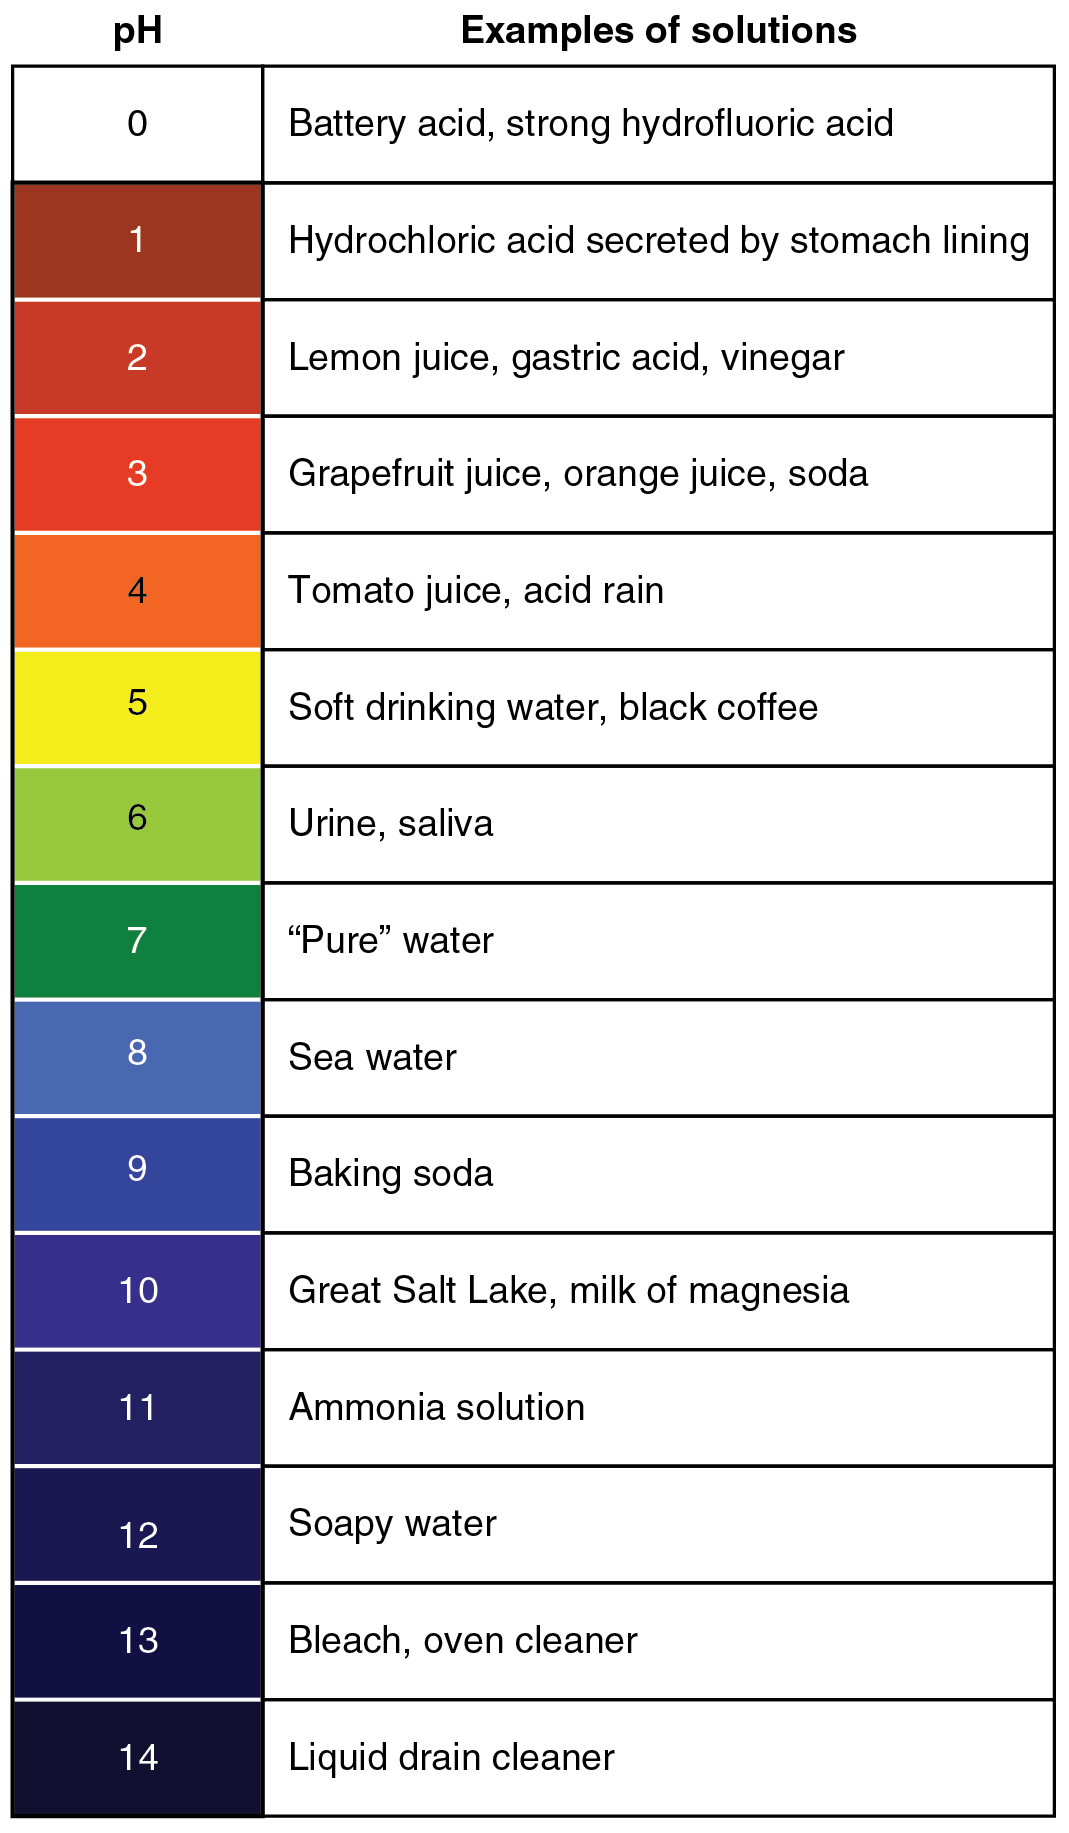 Image of the pH scale and examples of substances for each of the numbers on the scale.